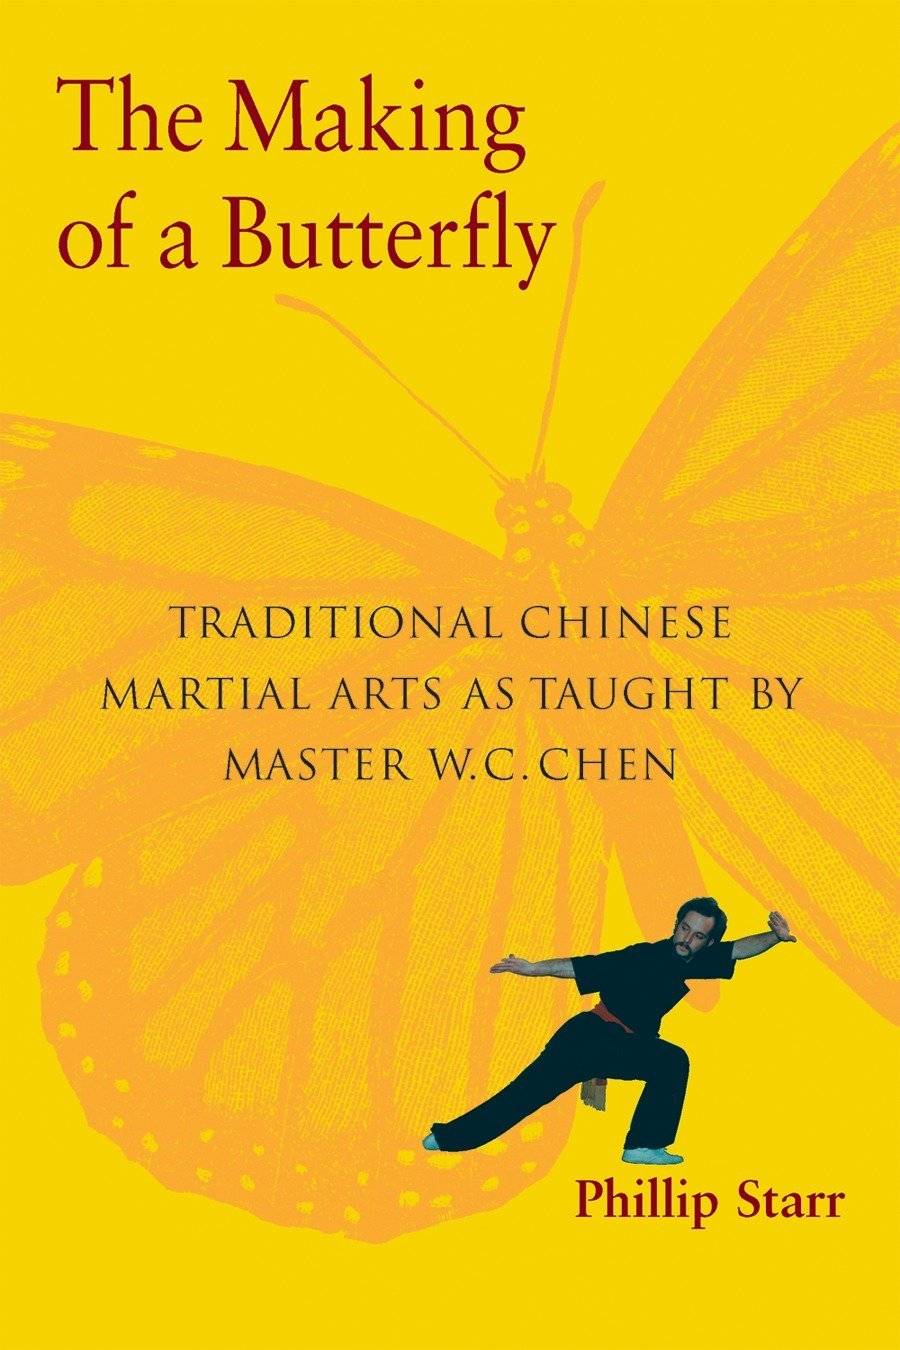 The Making of a Butterfly: Traditional Chinese Martial Arts As Taught by Master W. C. Chen PDF